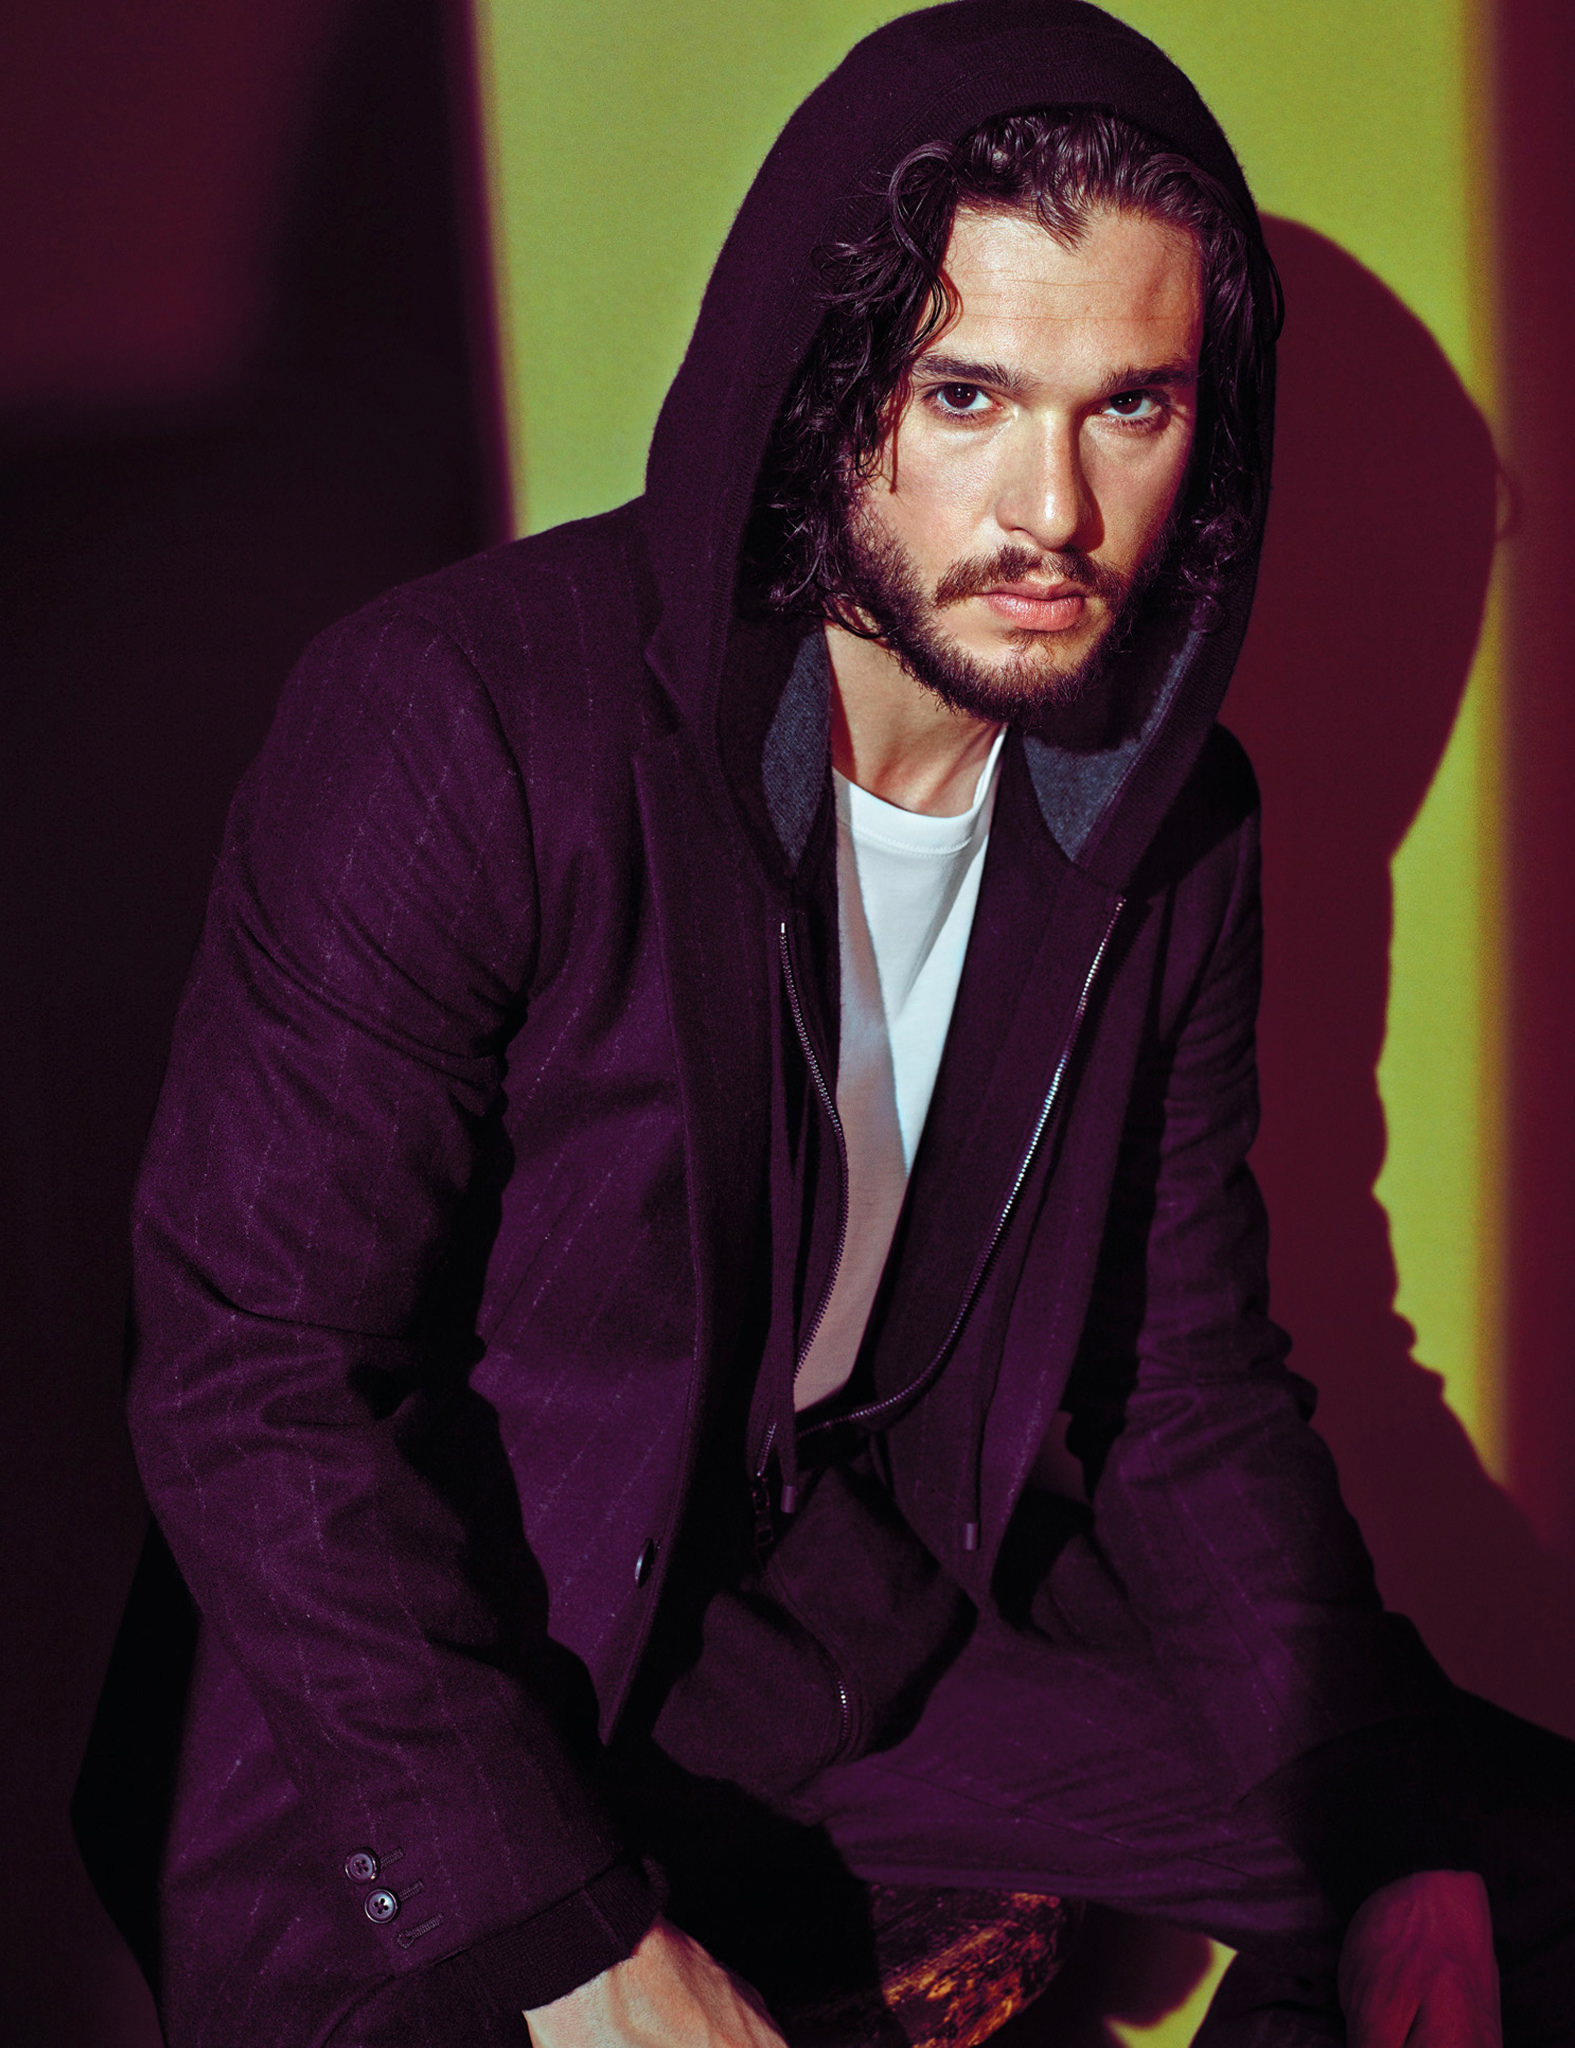 Kit Harington photo #753916